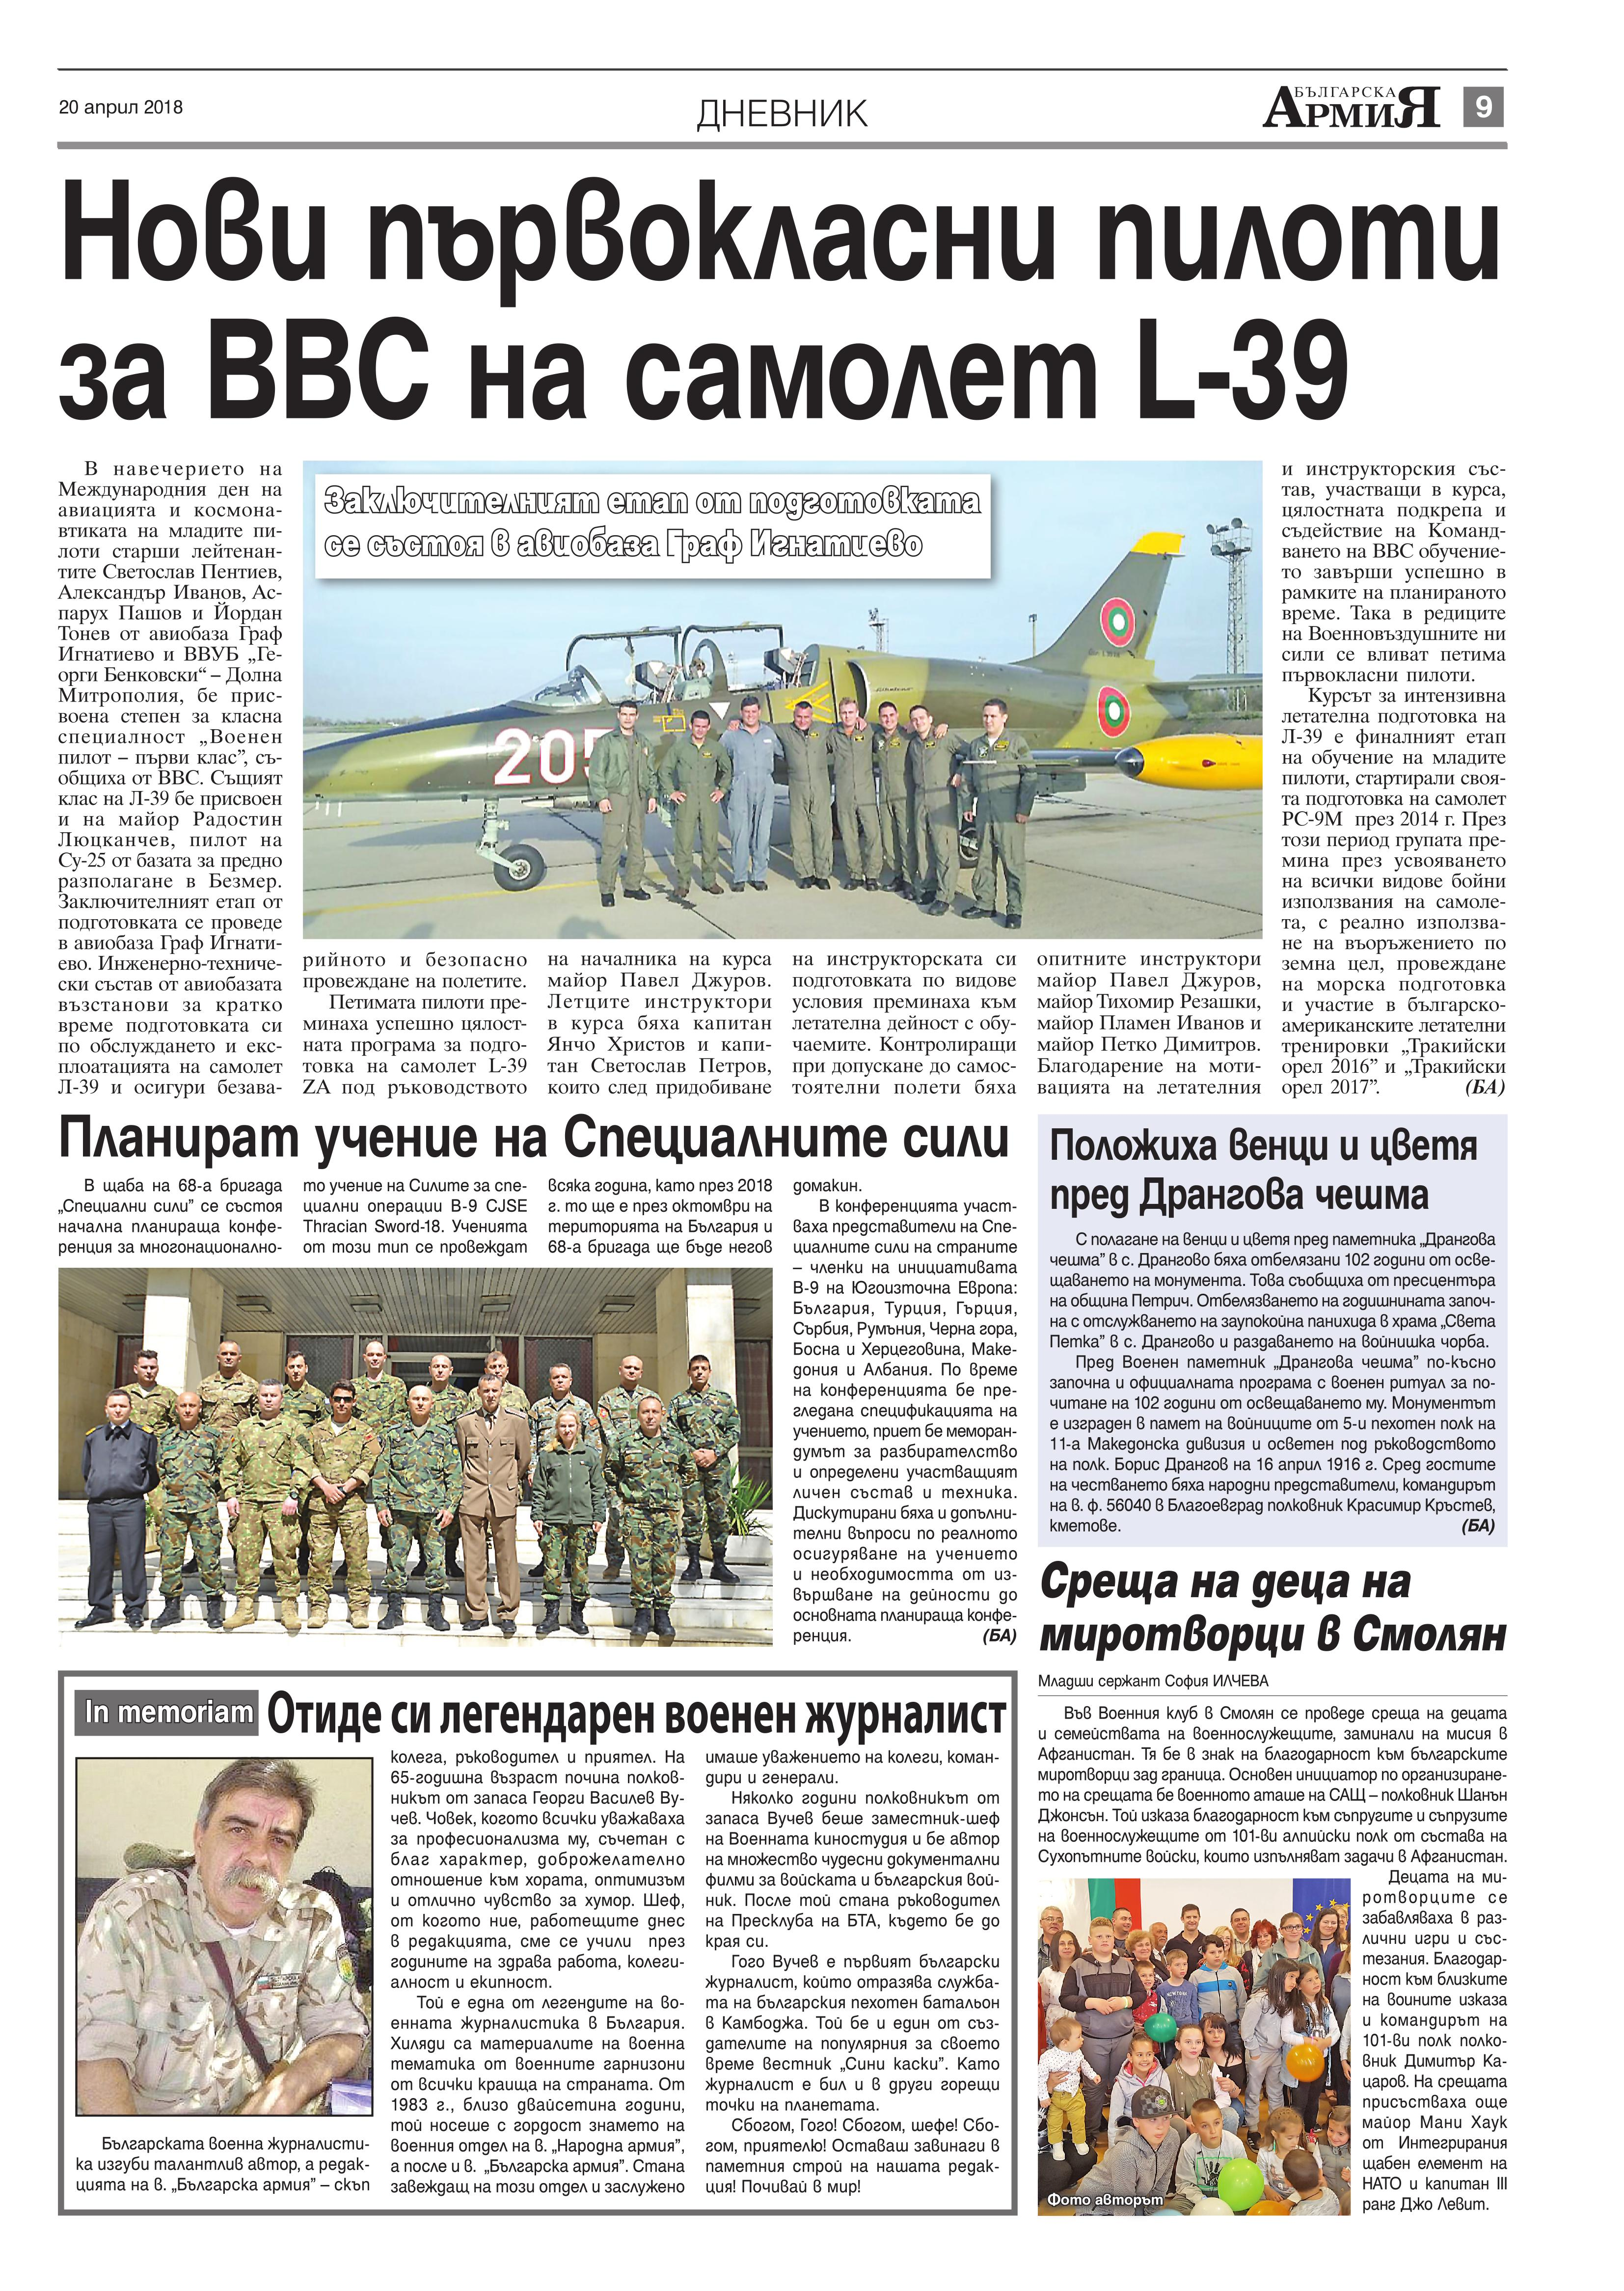 http://armymedia.bg/wp-content/uploads/2015/06/09.page1_-46.jpg